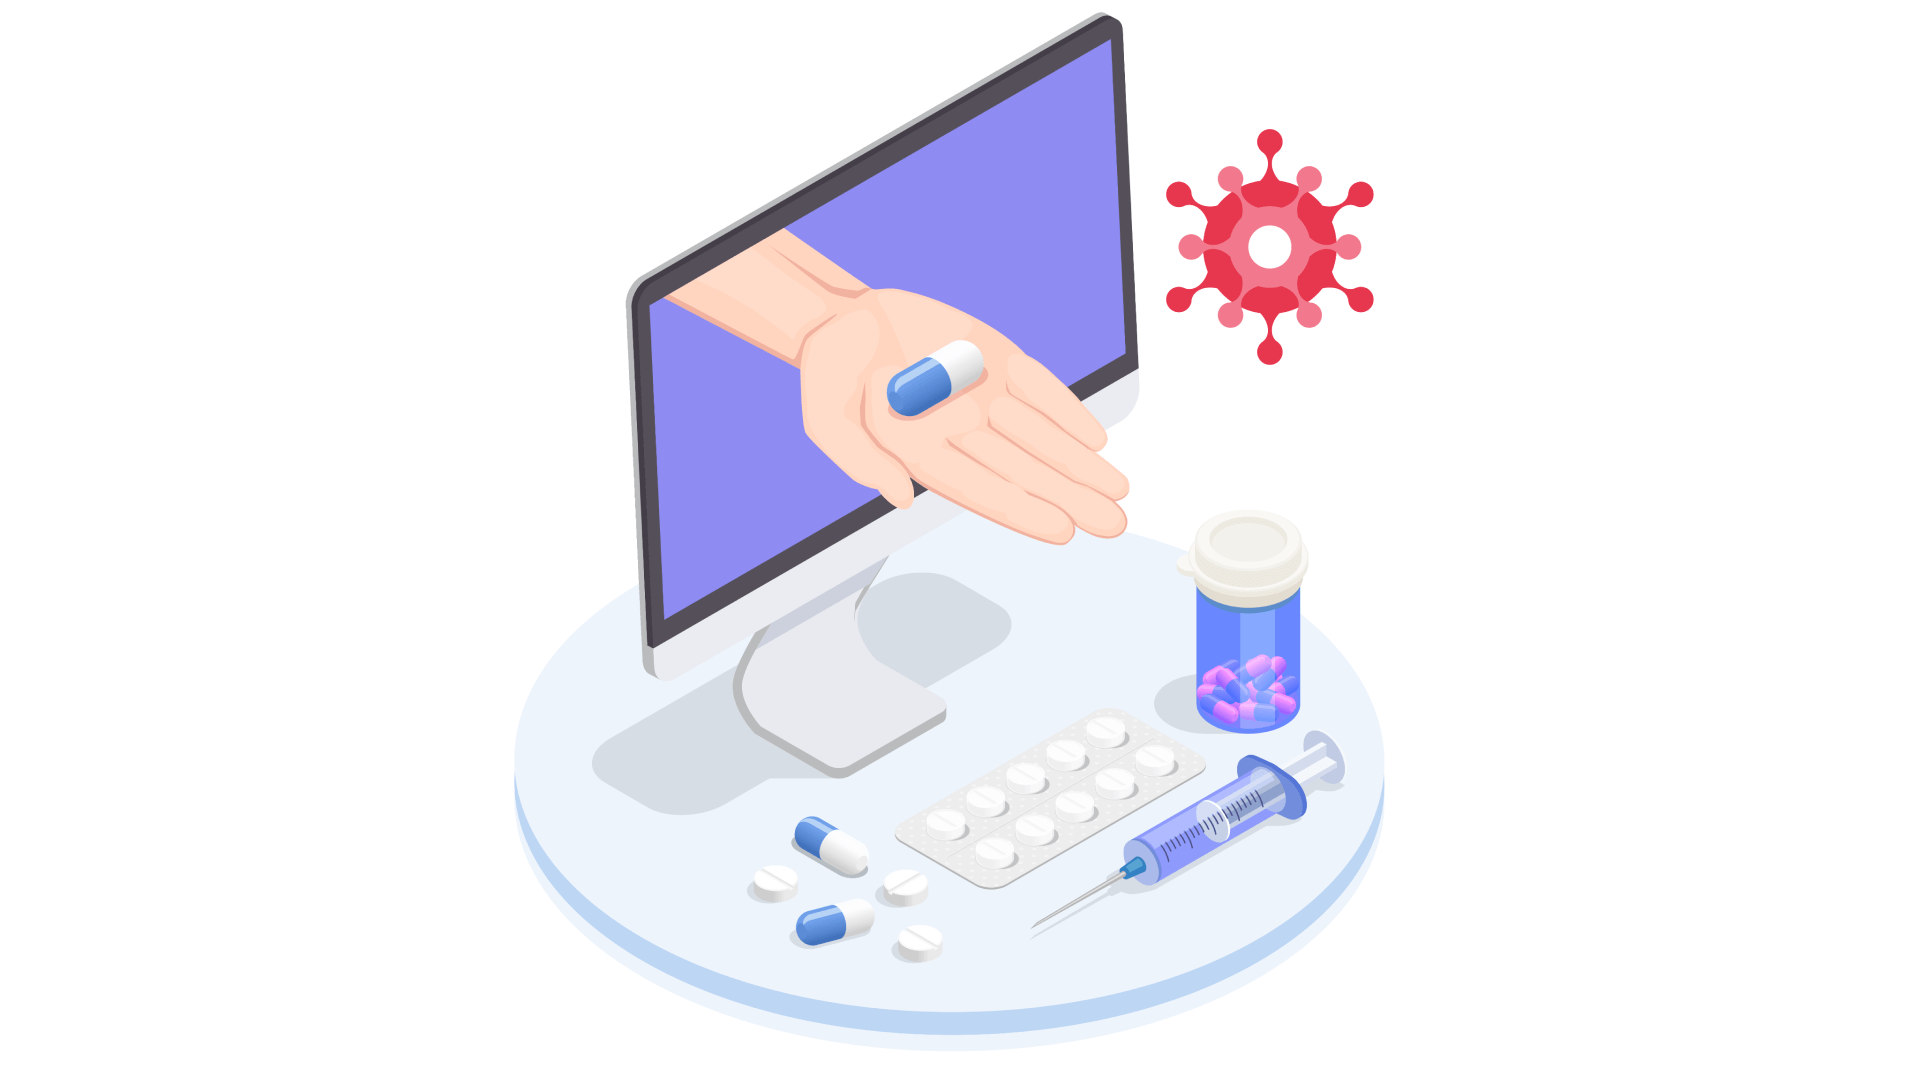 The COVID-19 pandemic is currently reshaping telehealth. Find out how.